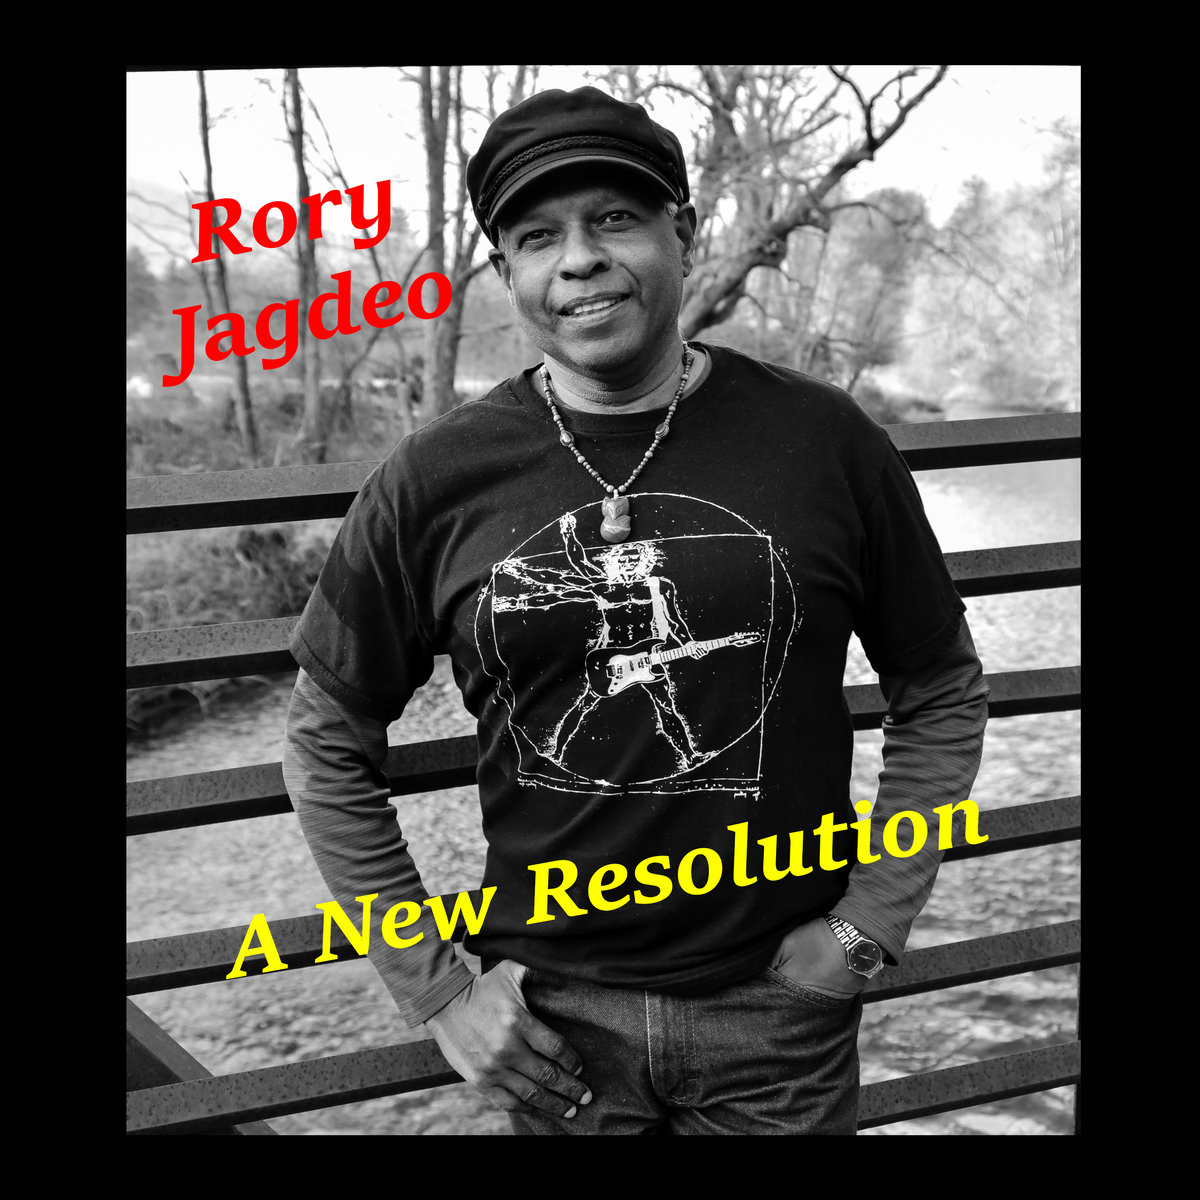 A New Resolution by Rory Jagdeo